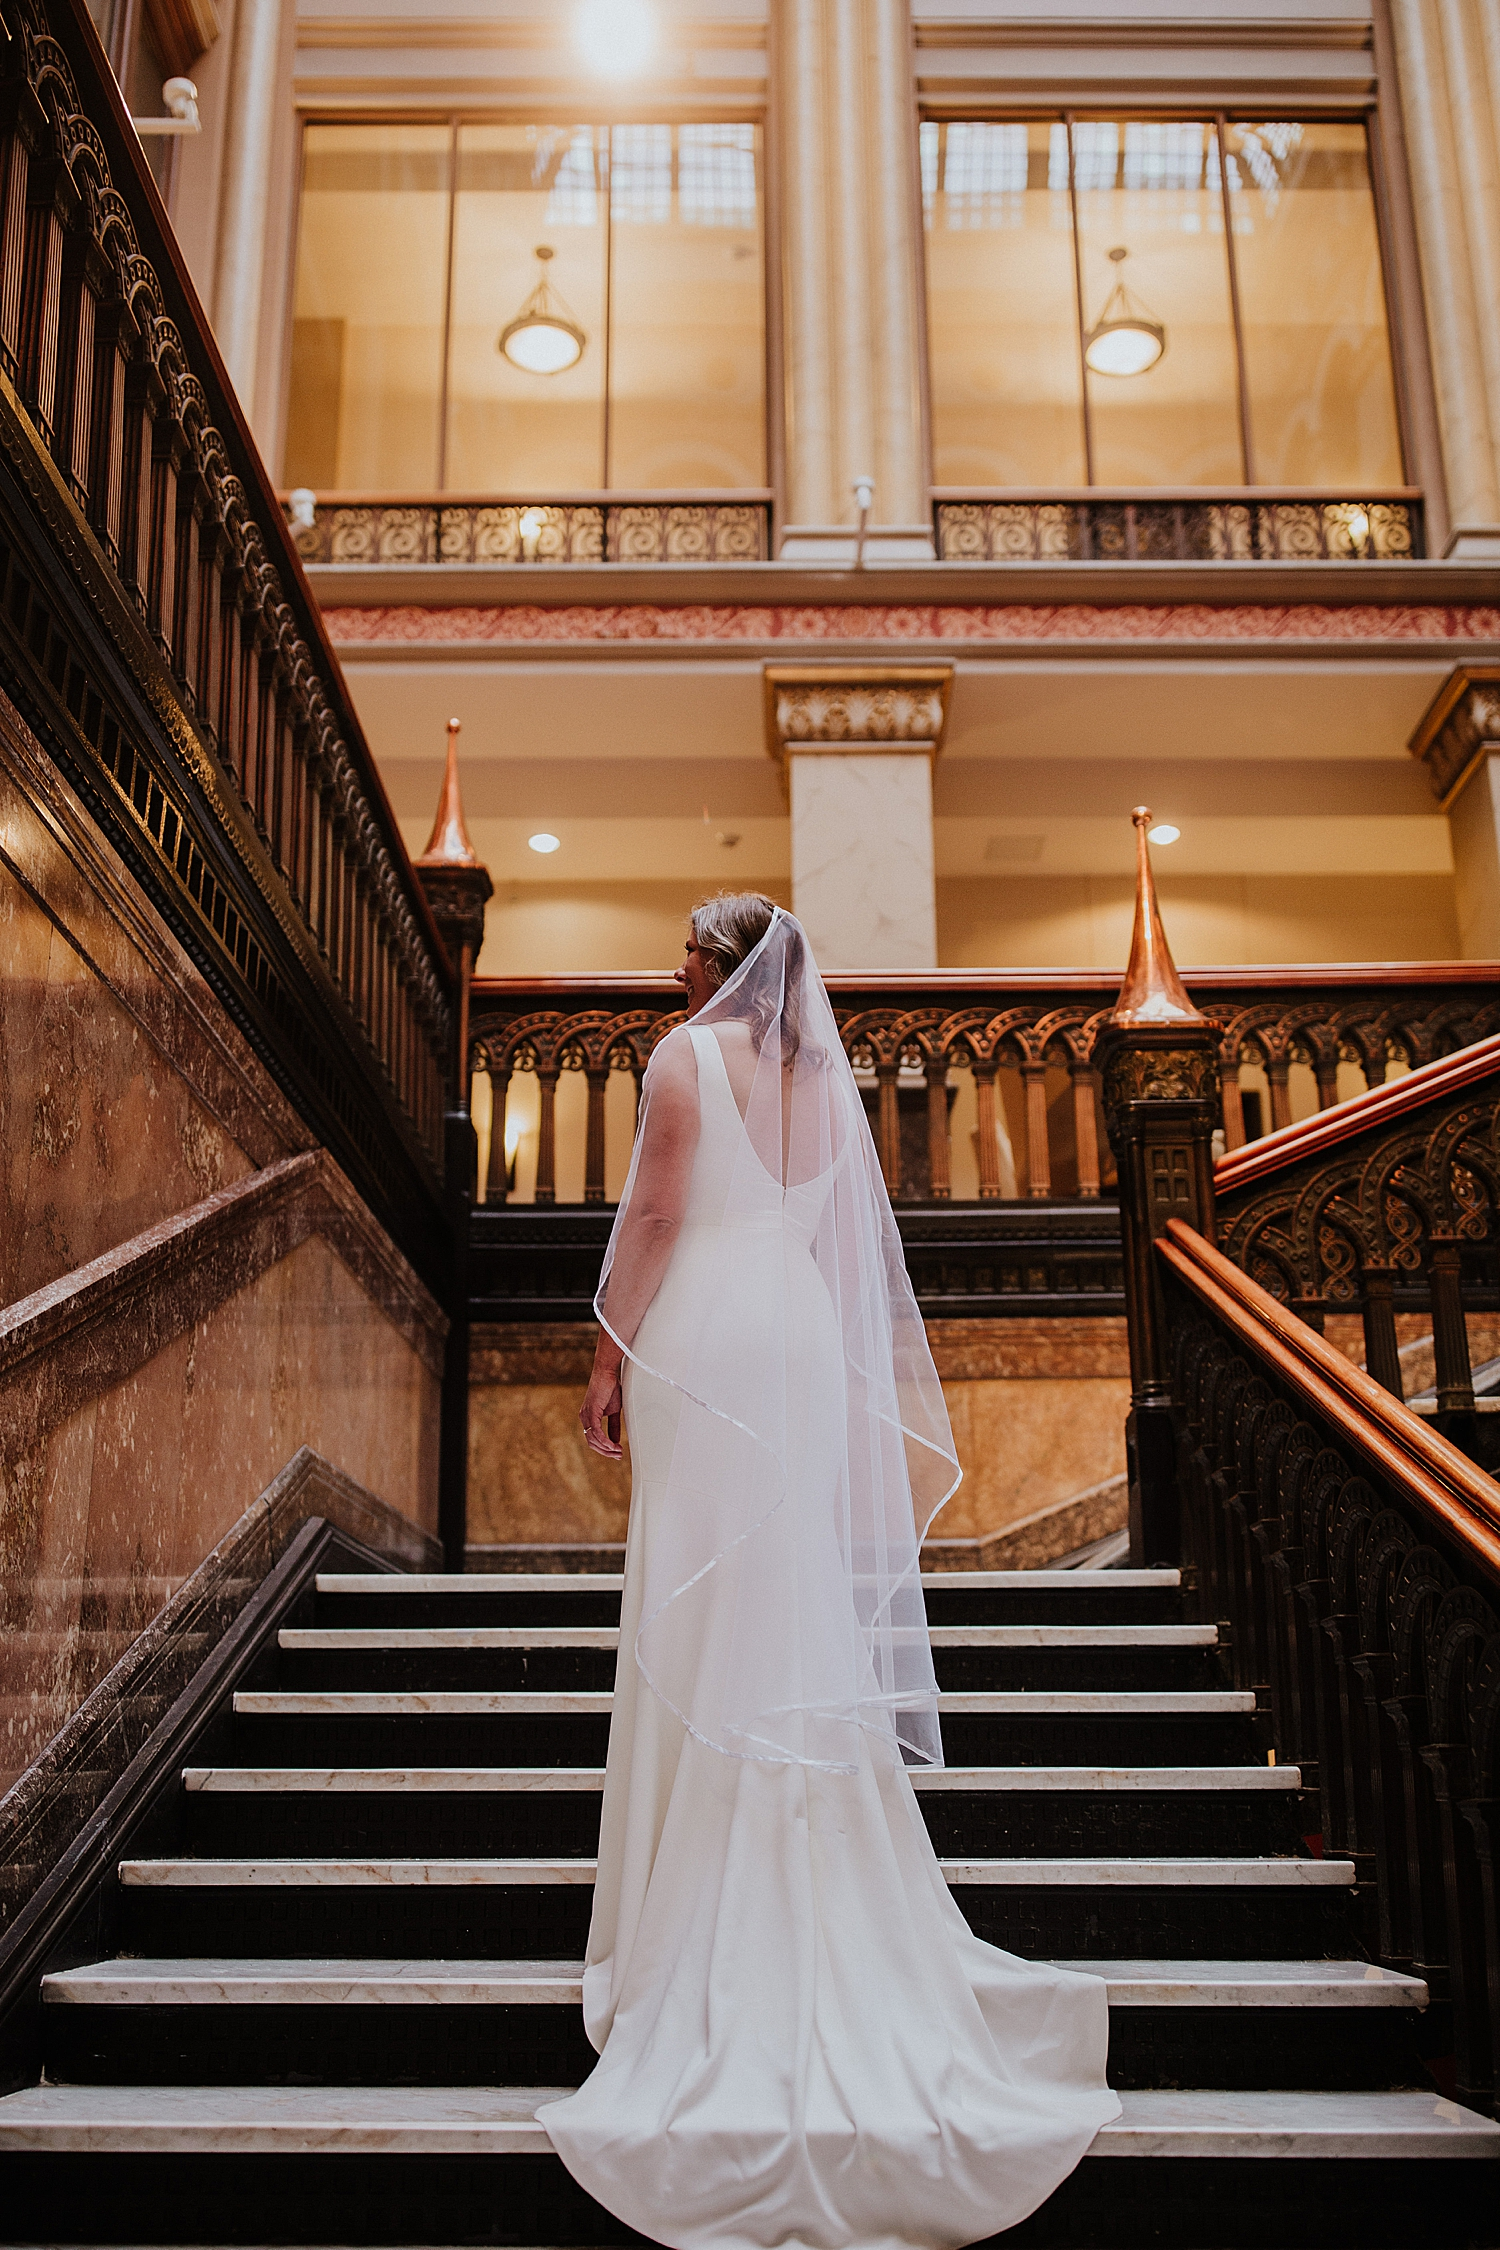 Bridal portrait Hilton Garden Inn stairs